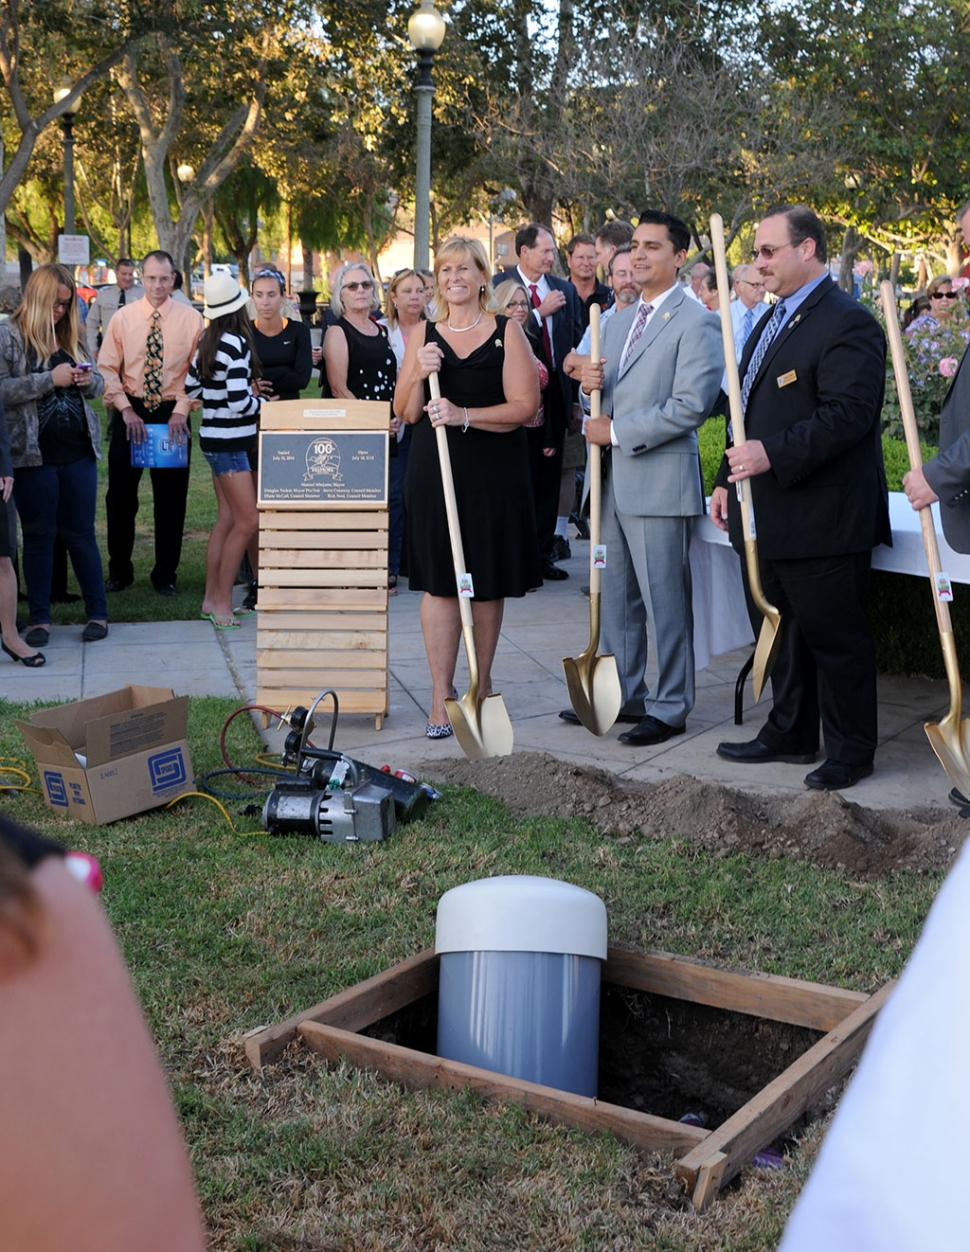 In honor of Fillmore's Centennial anniversary, a time capsule was buried in Central Park. Pictured with the capsule are Councilmembers Diane McCall and Douglas Tucker (right), with Mayor Manuel Minjares center. All councilmembers were present.